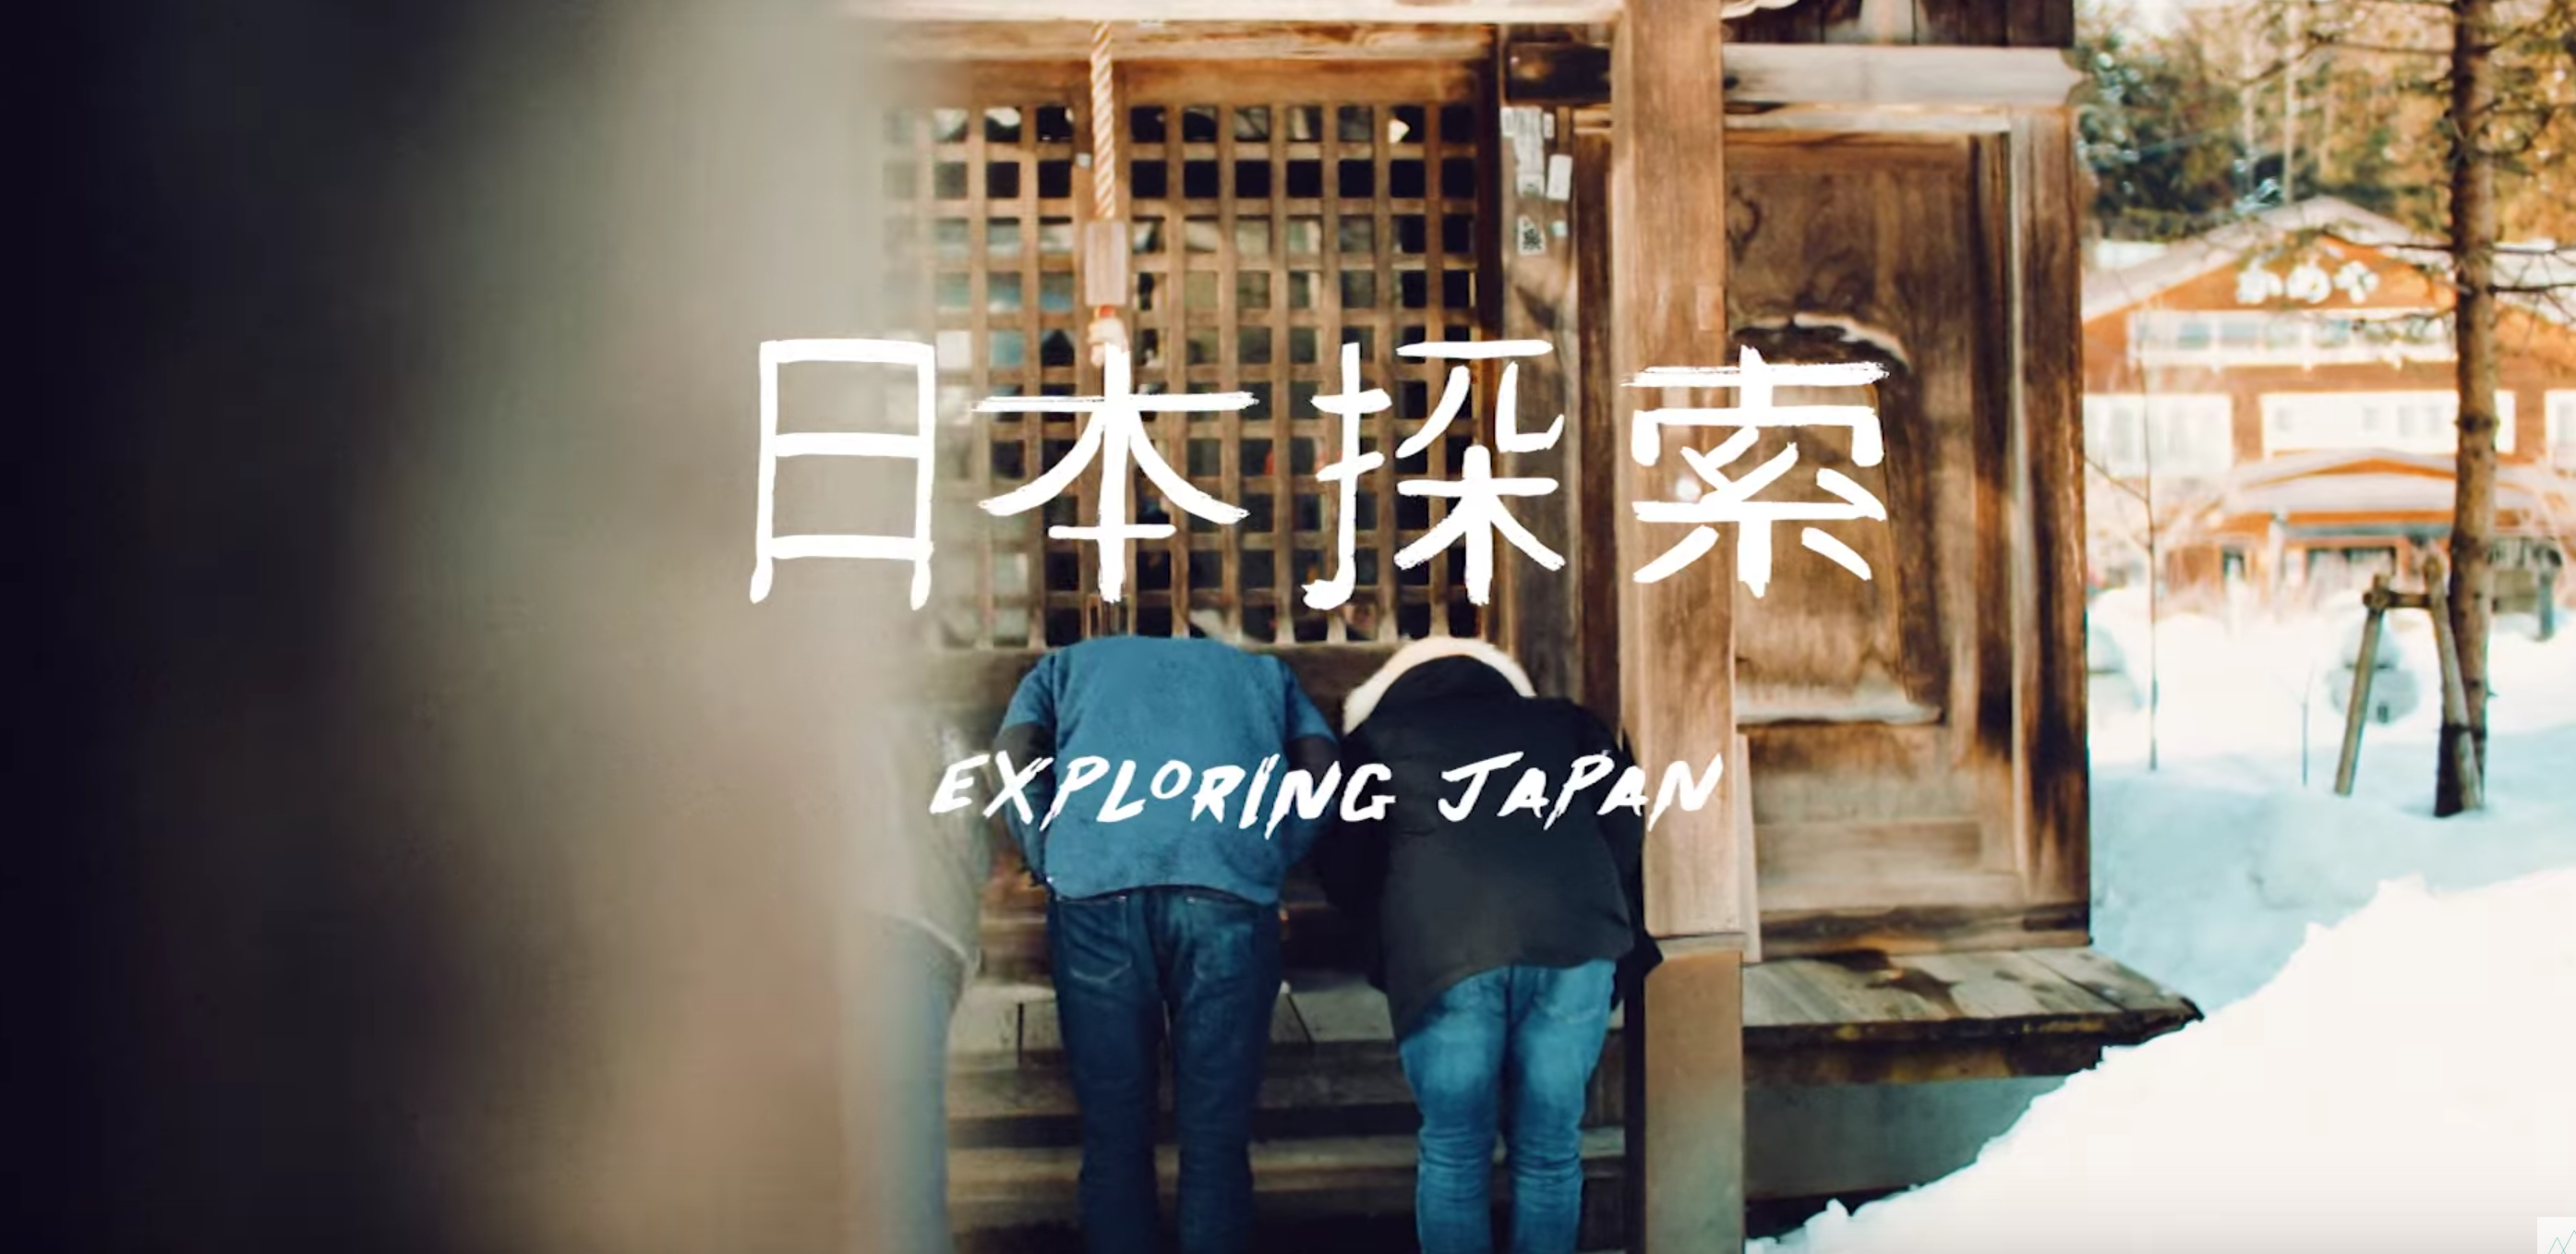 EXPLORING JAPAN - EP3, JAPOW THE EXPERIENCE